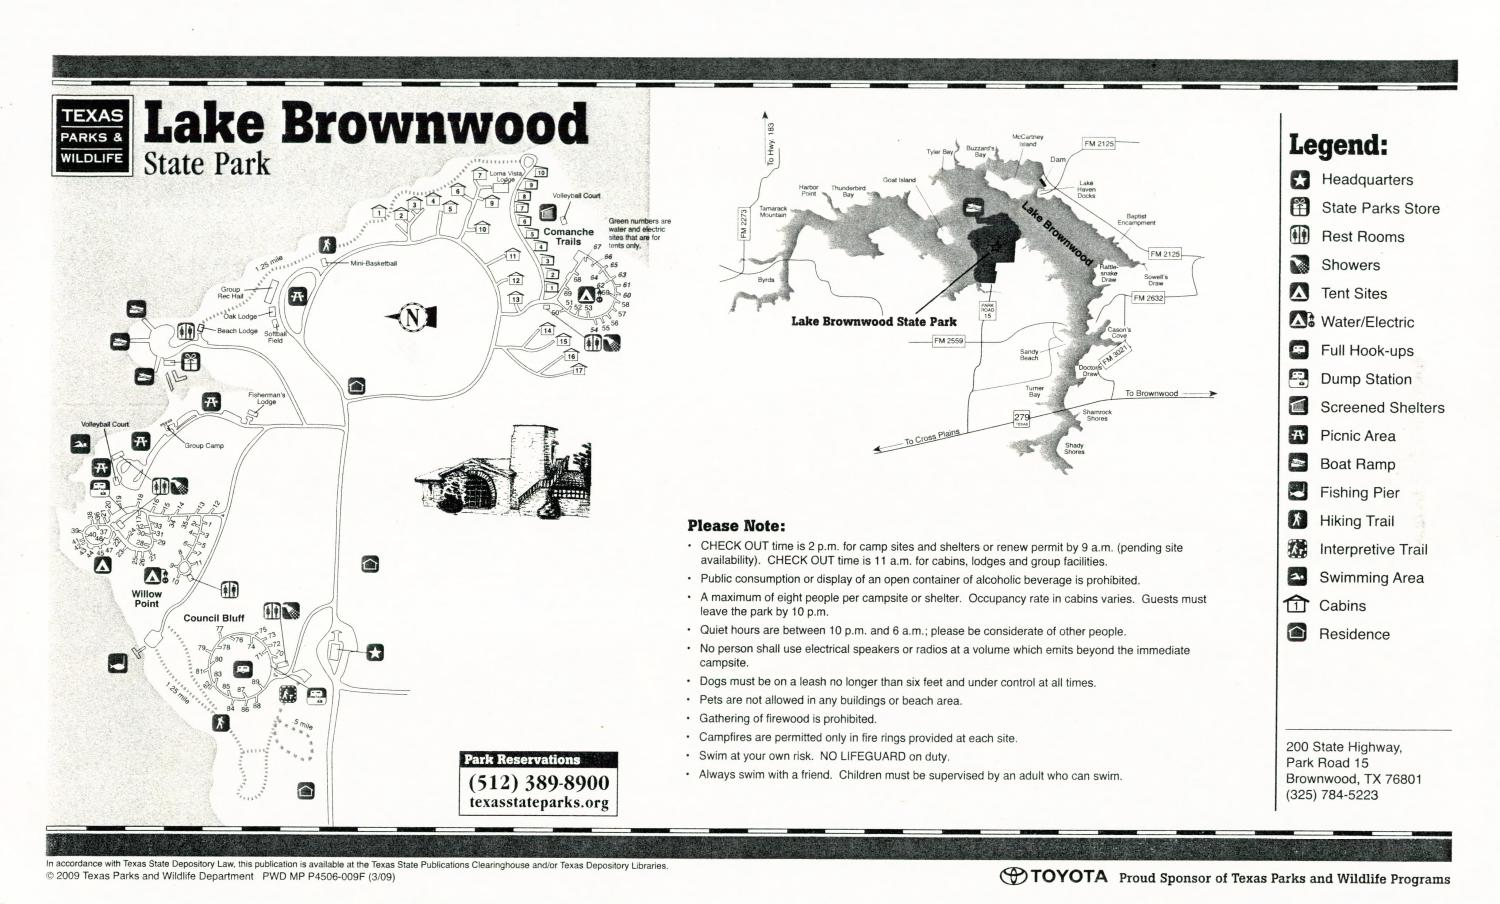 Lake Brownwood State Park, Map of the Lake Bob Sandlin State Park outlining hiking trails and highlighting activities, facilities, and other features such as bathrooms, lodgings, water/electric, etc. It also contains general information for the park and for the Texas Parks and Wildlife Department.,